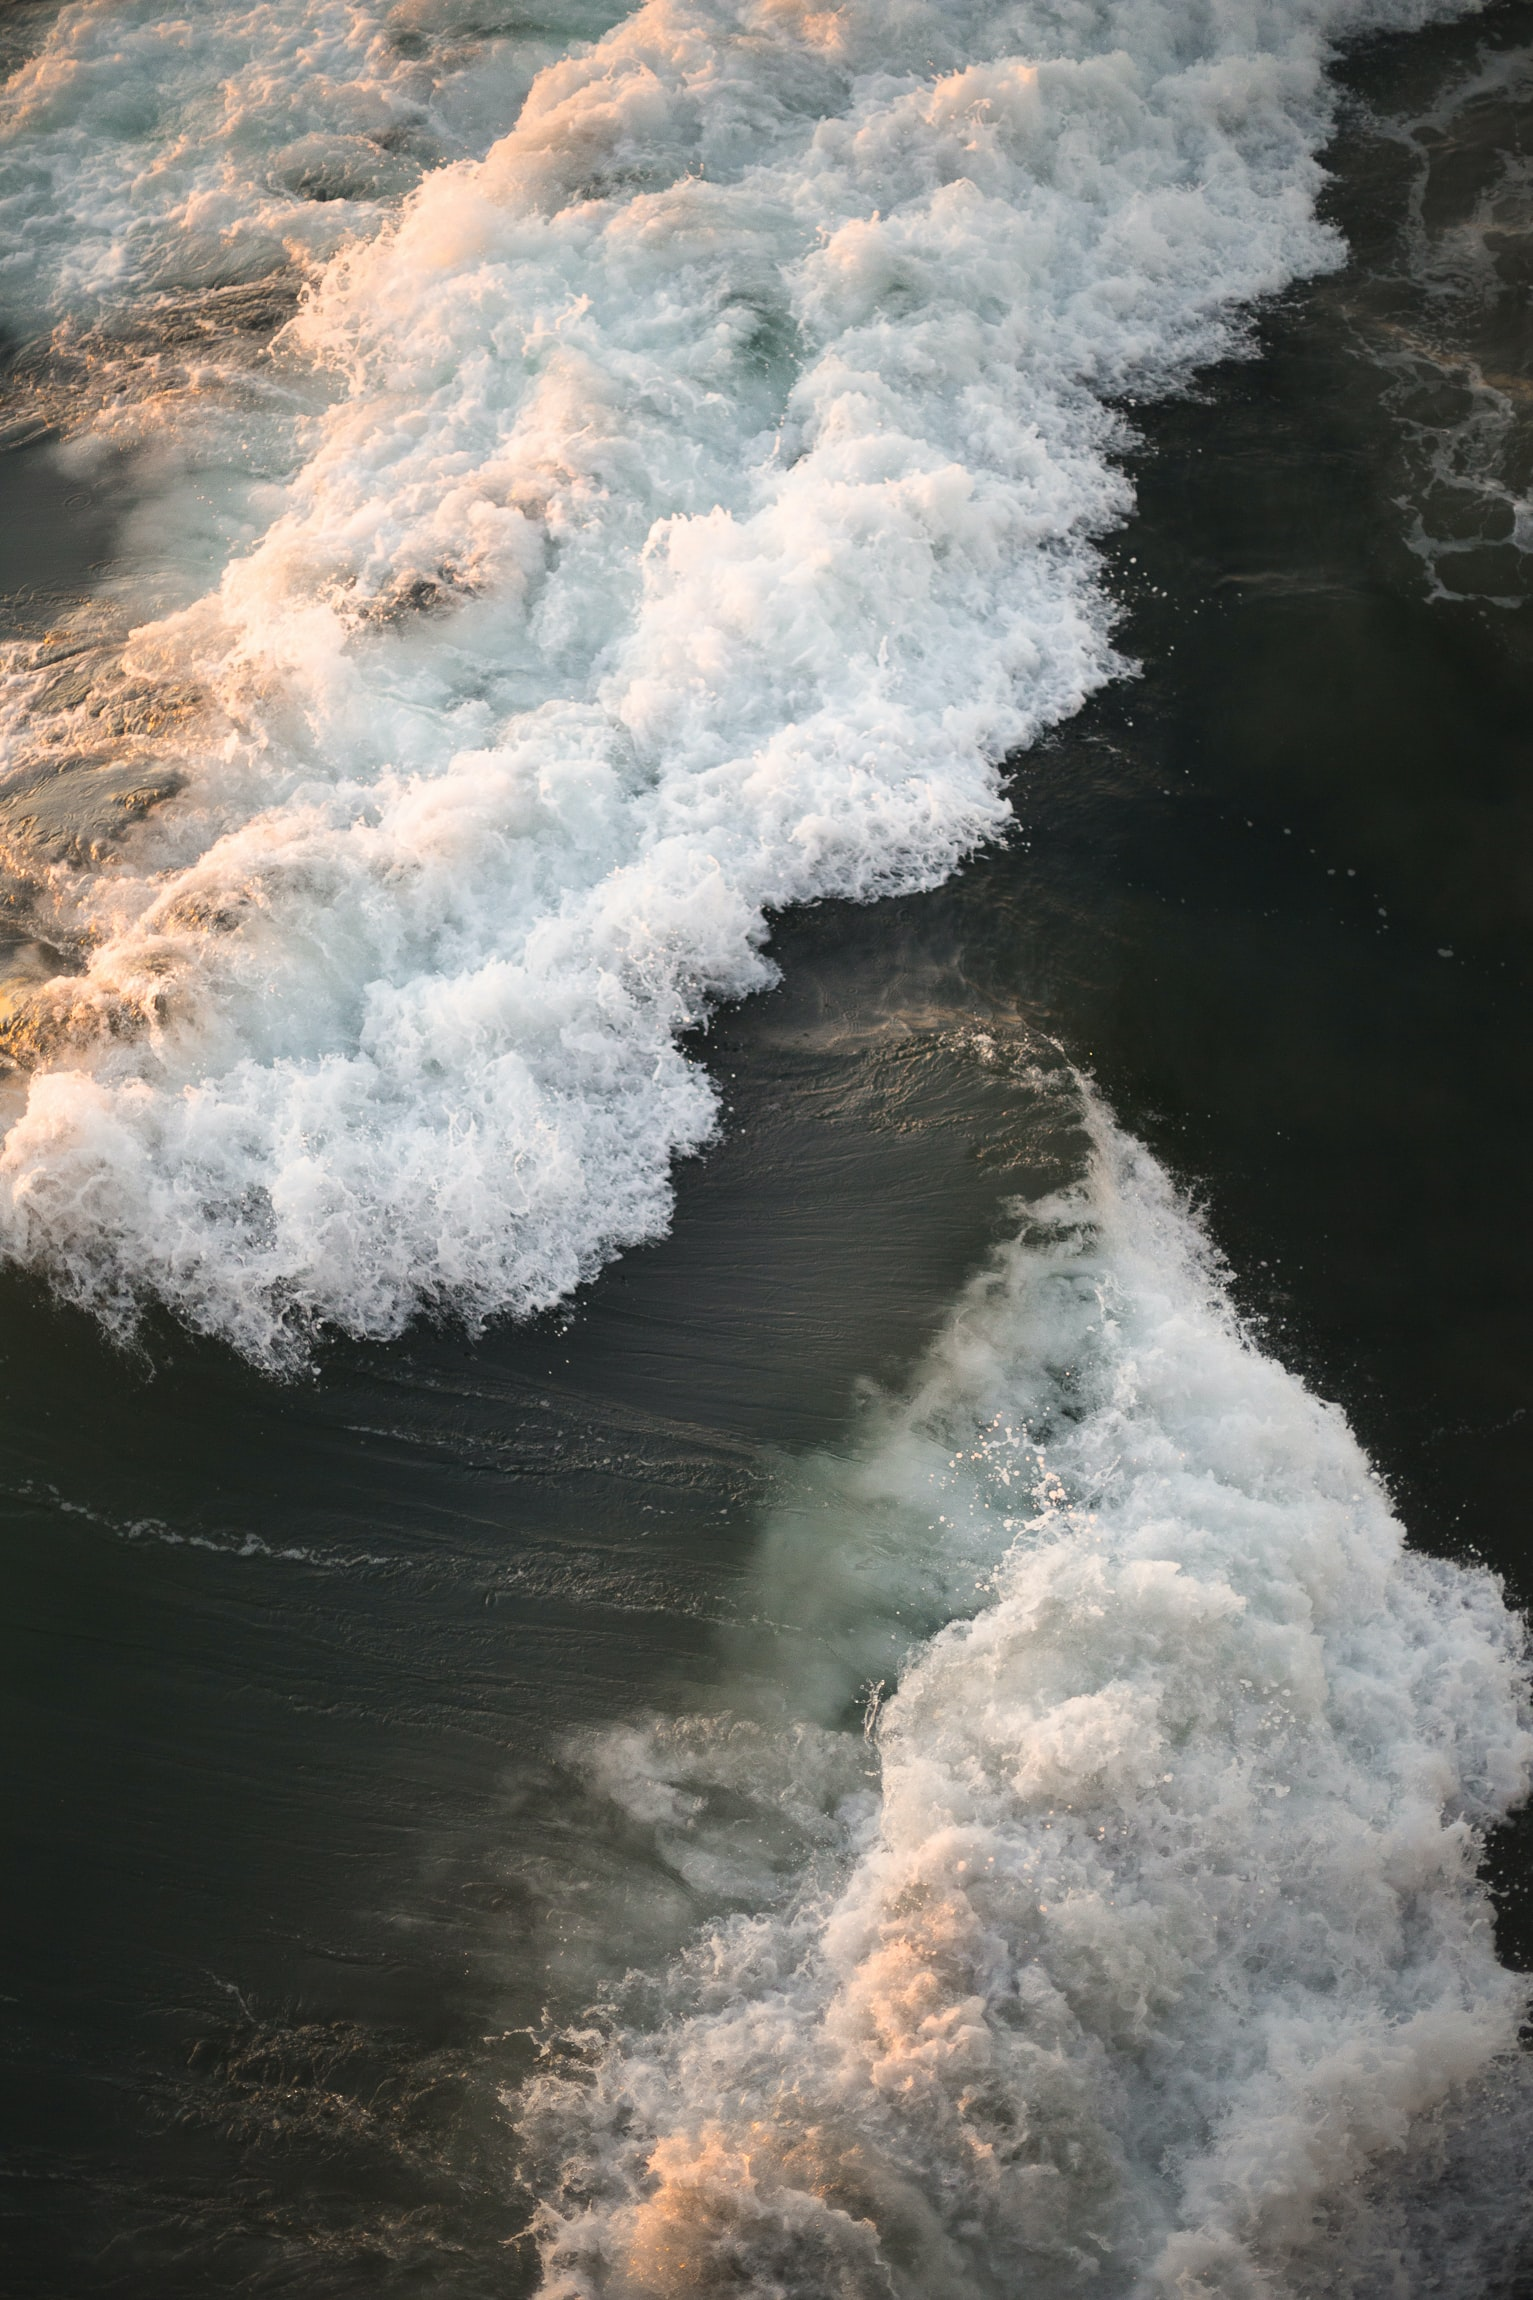 waves crashing on shore in aerial photography